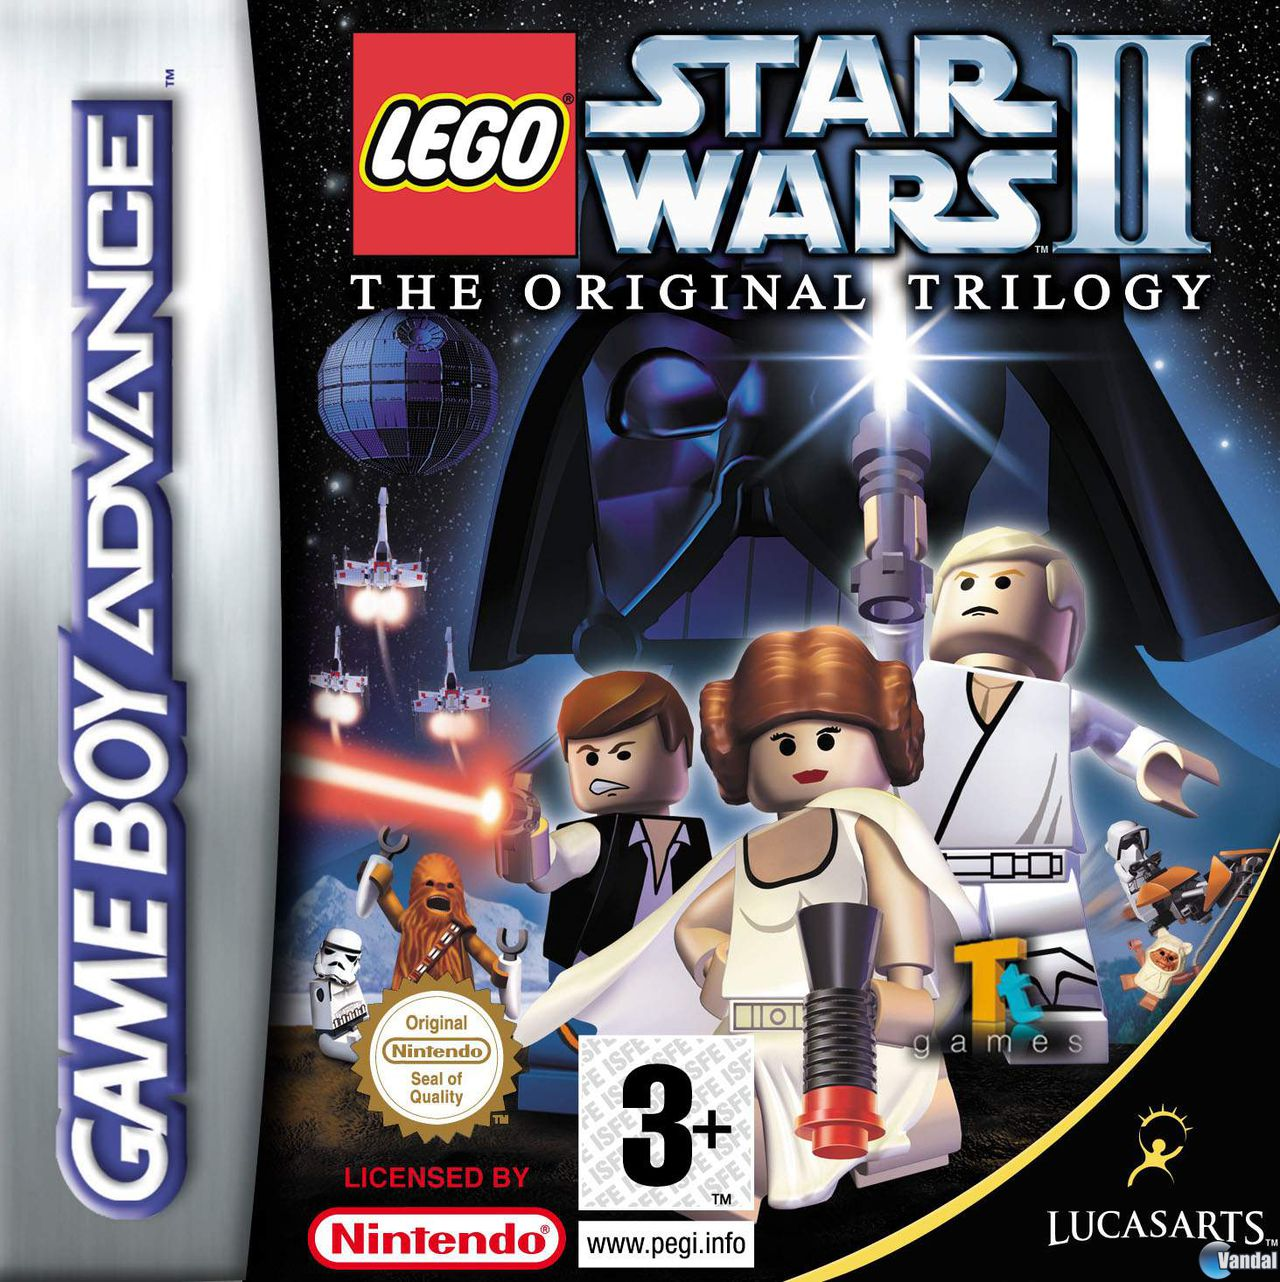 de LEGO Star Wars 2: The Original Trilogy para Game Boy Advance